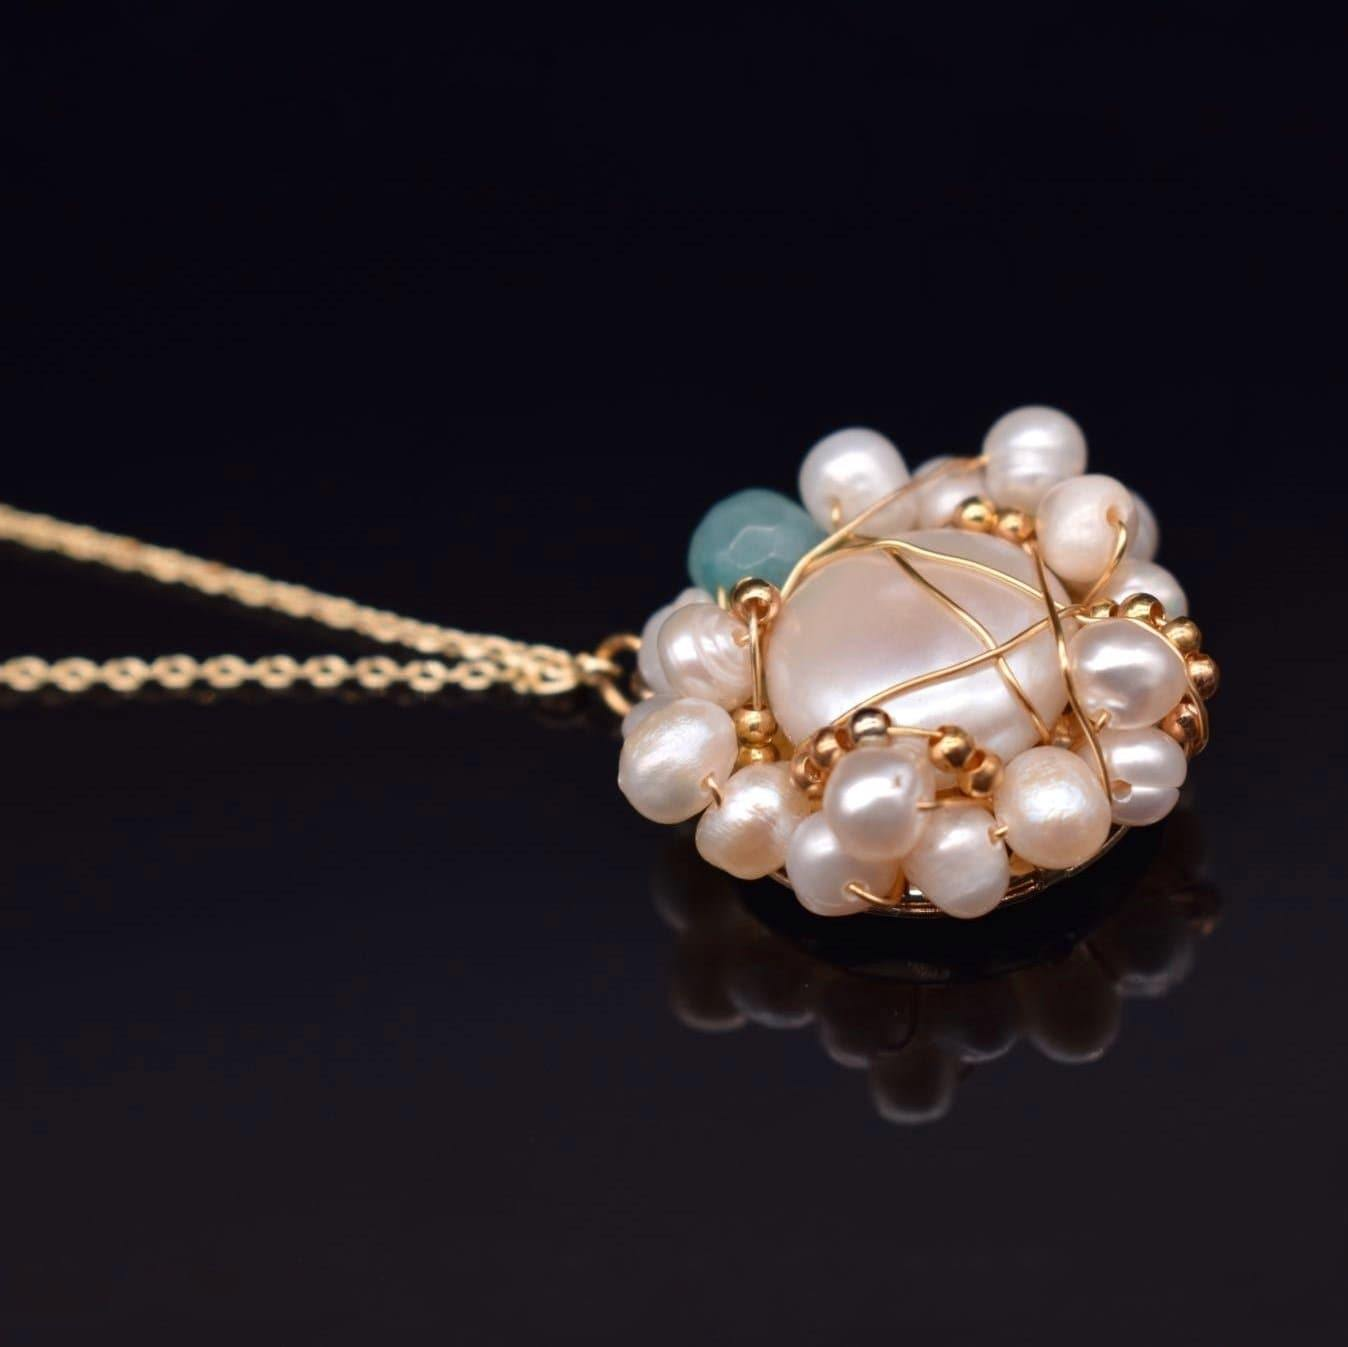 Baroque Pearl Necklace - Masie